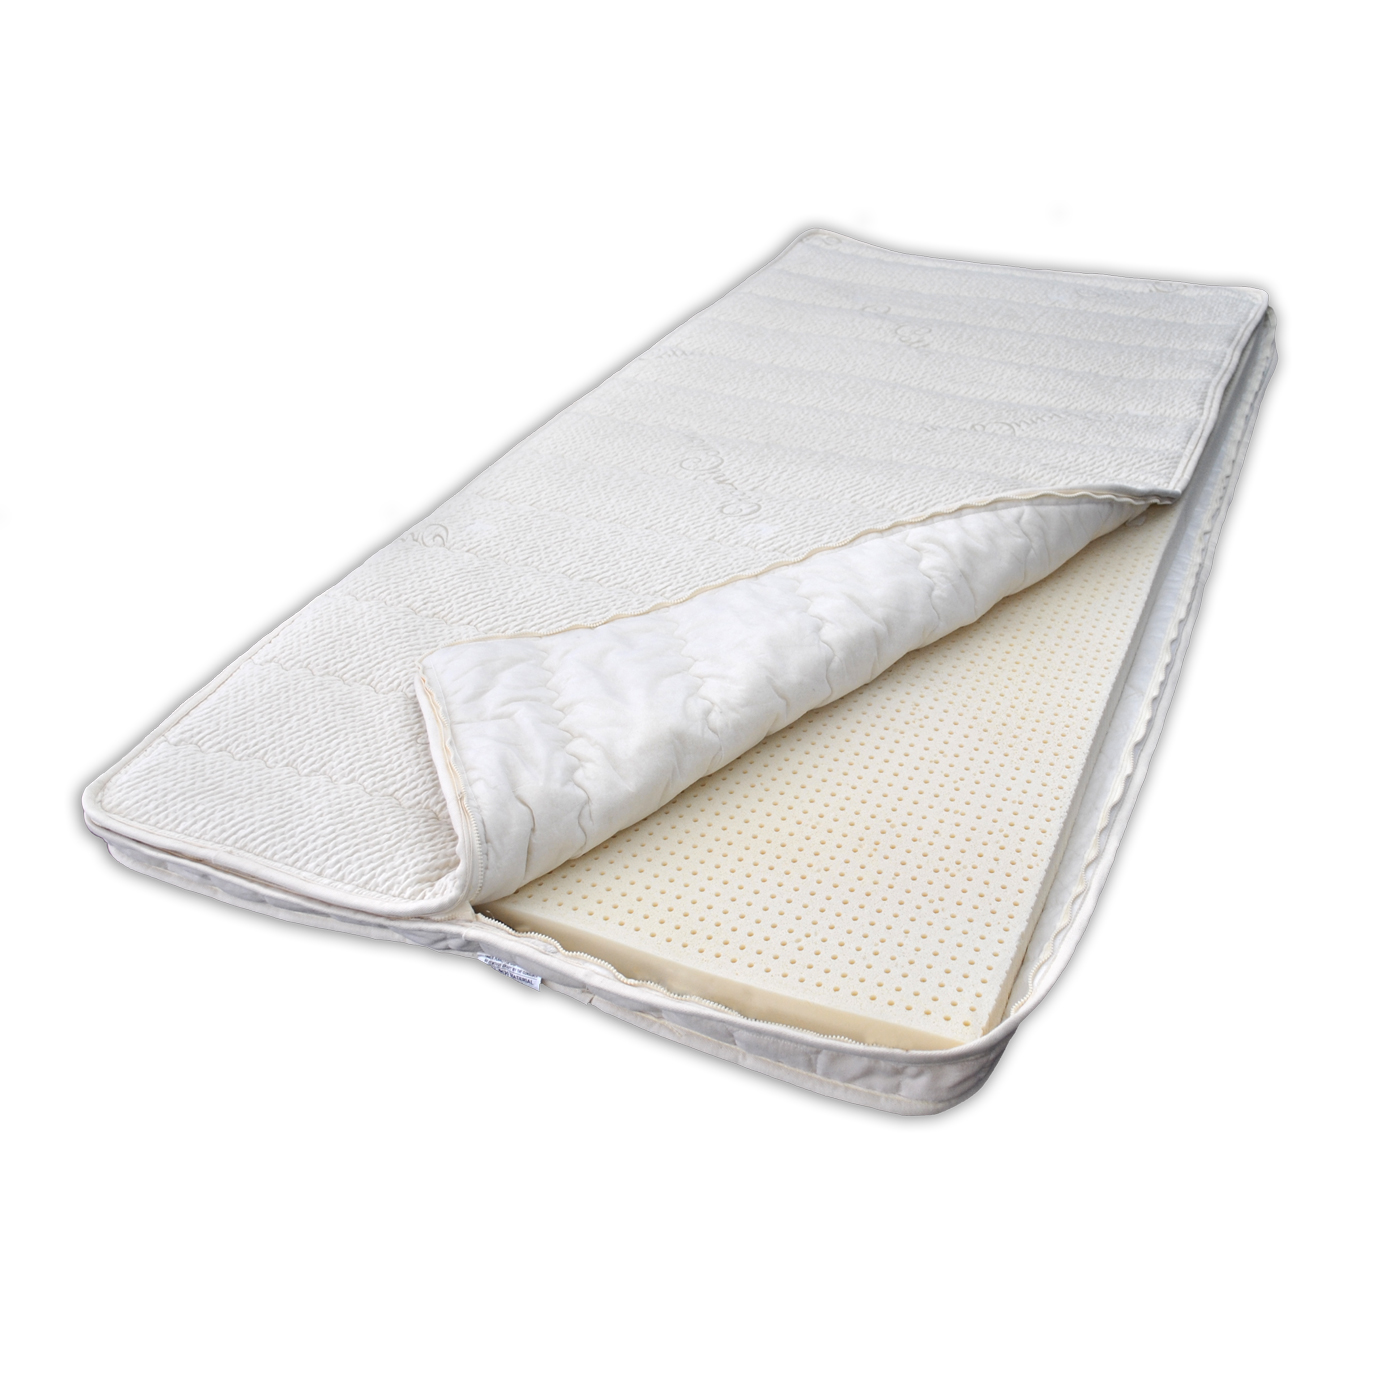 highest rated Soft Latex Mattress Pad Topper